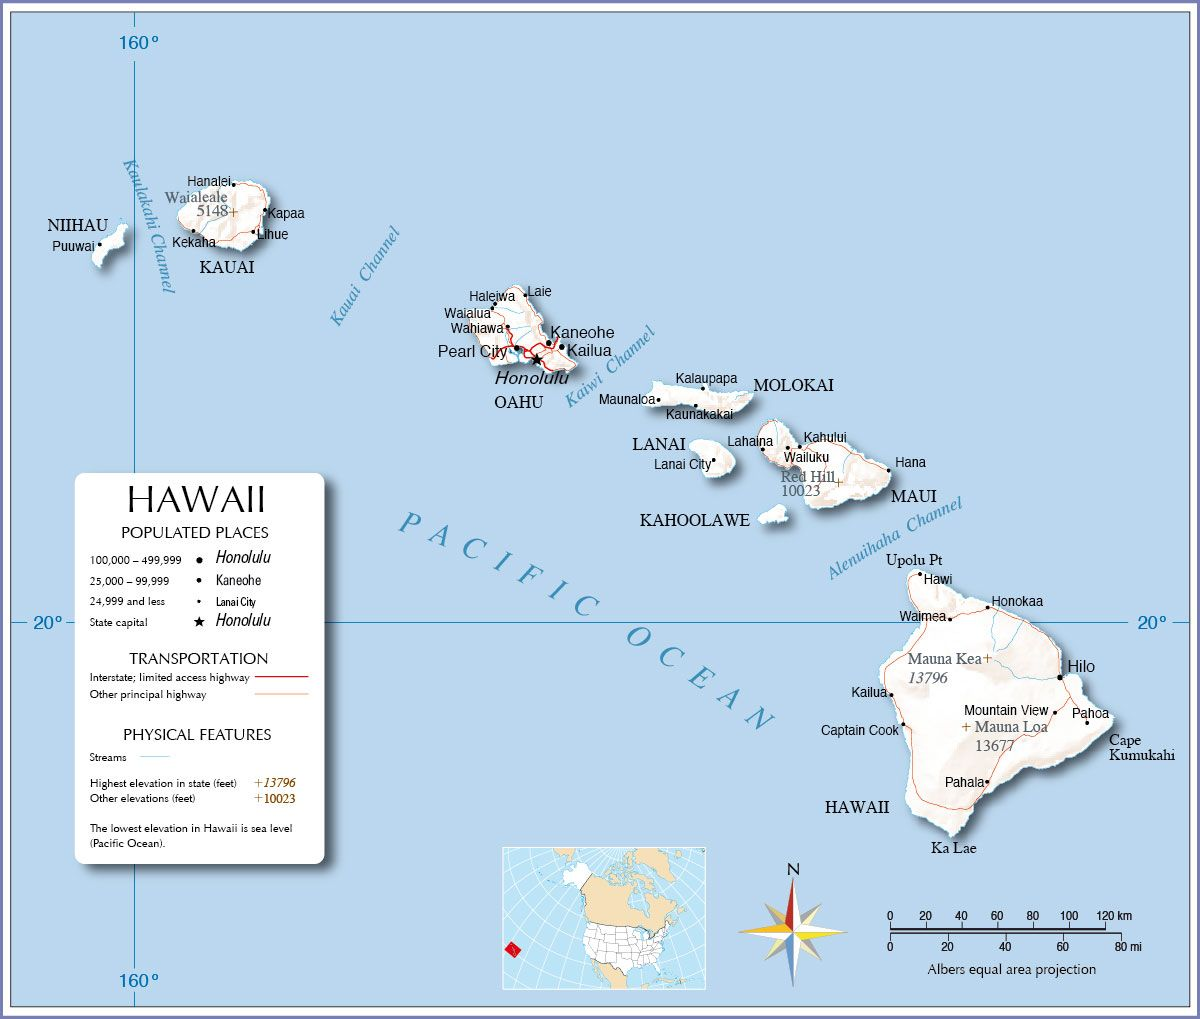 Worksheet. Maps of Hawaii provide information on the different cities and